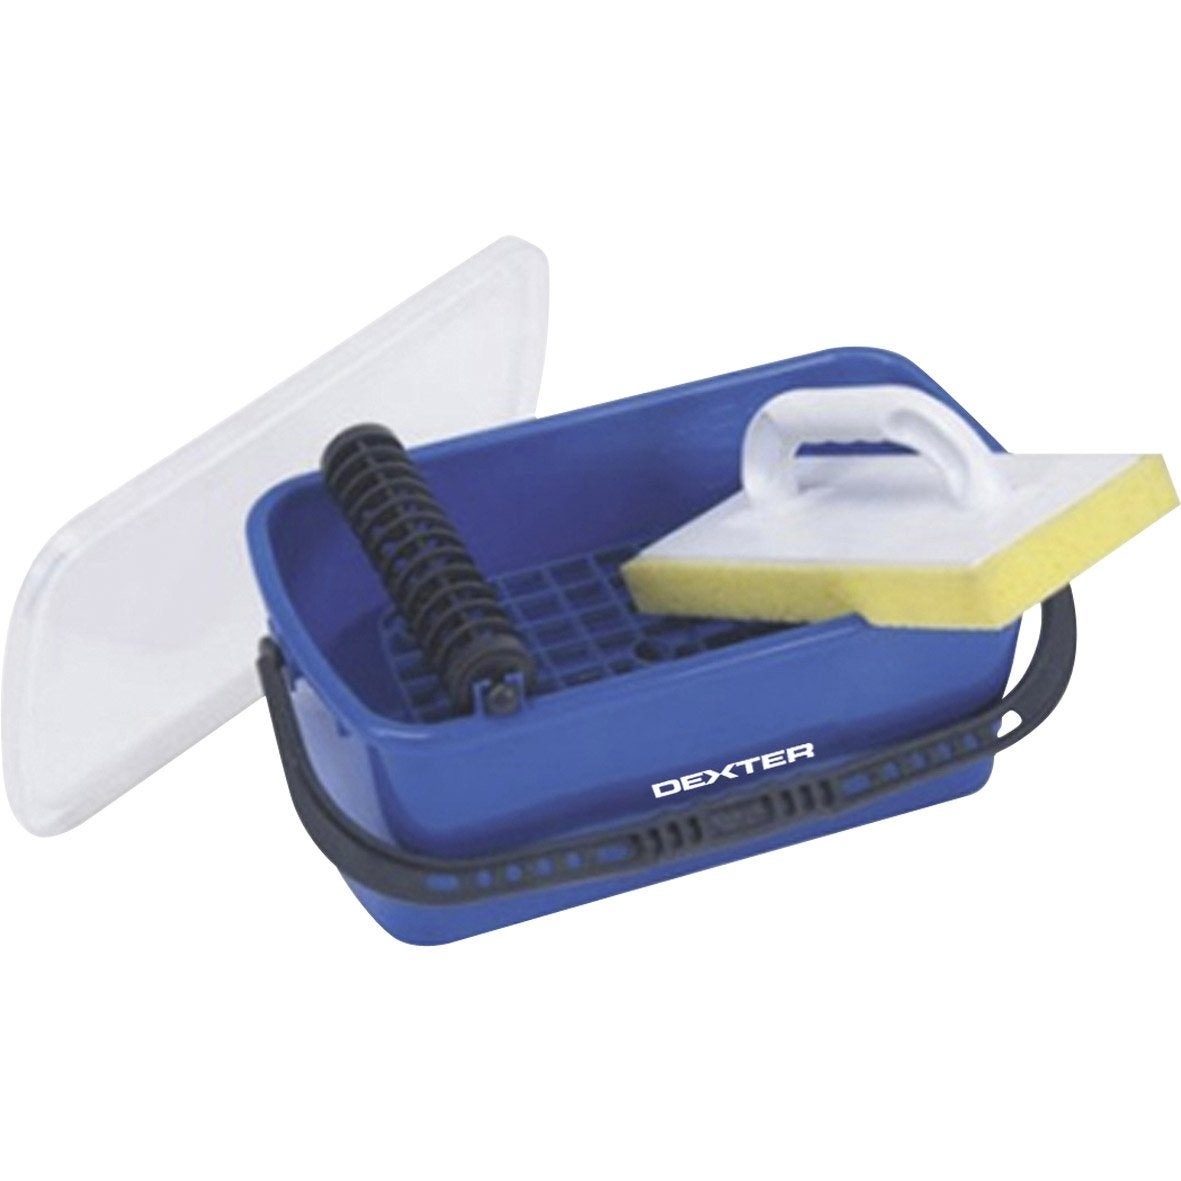 Malaxeur Colle Carrelage Dexter L500 Mm Ventouse Simple